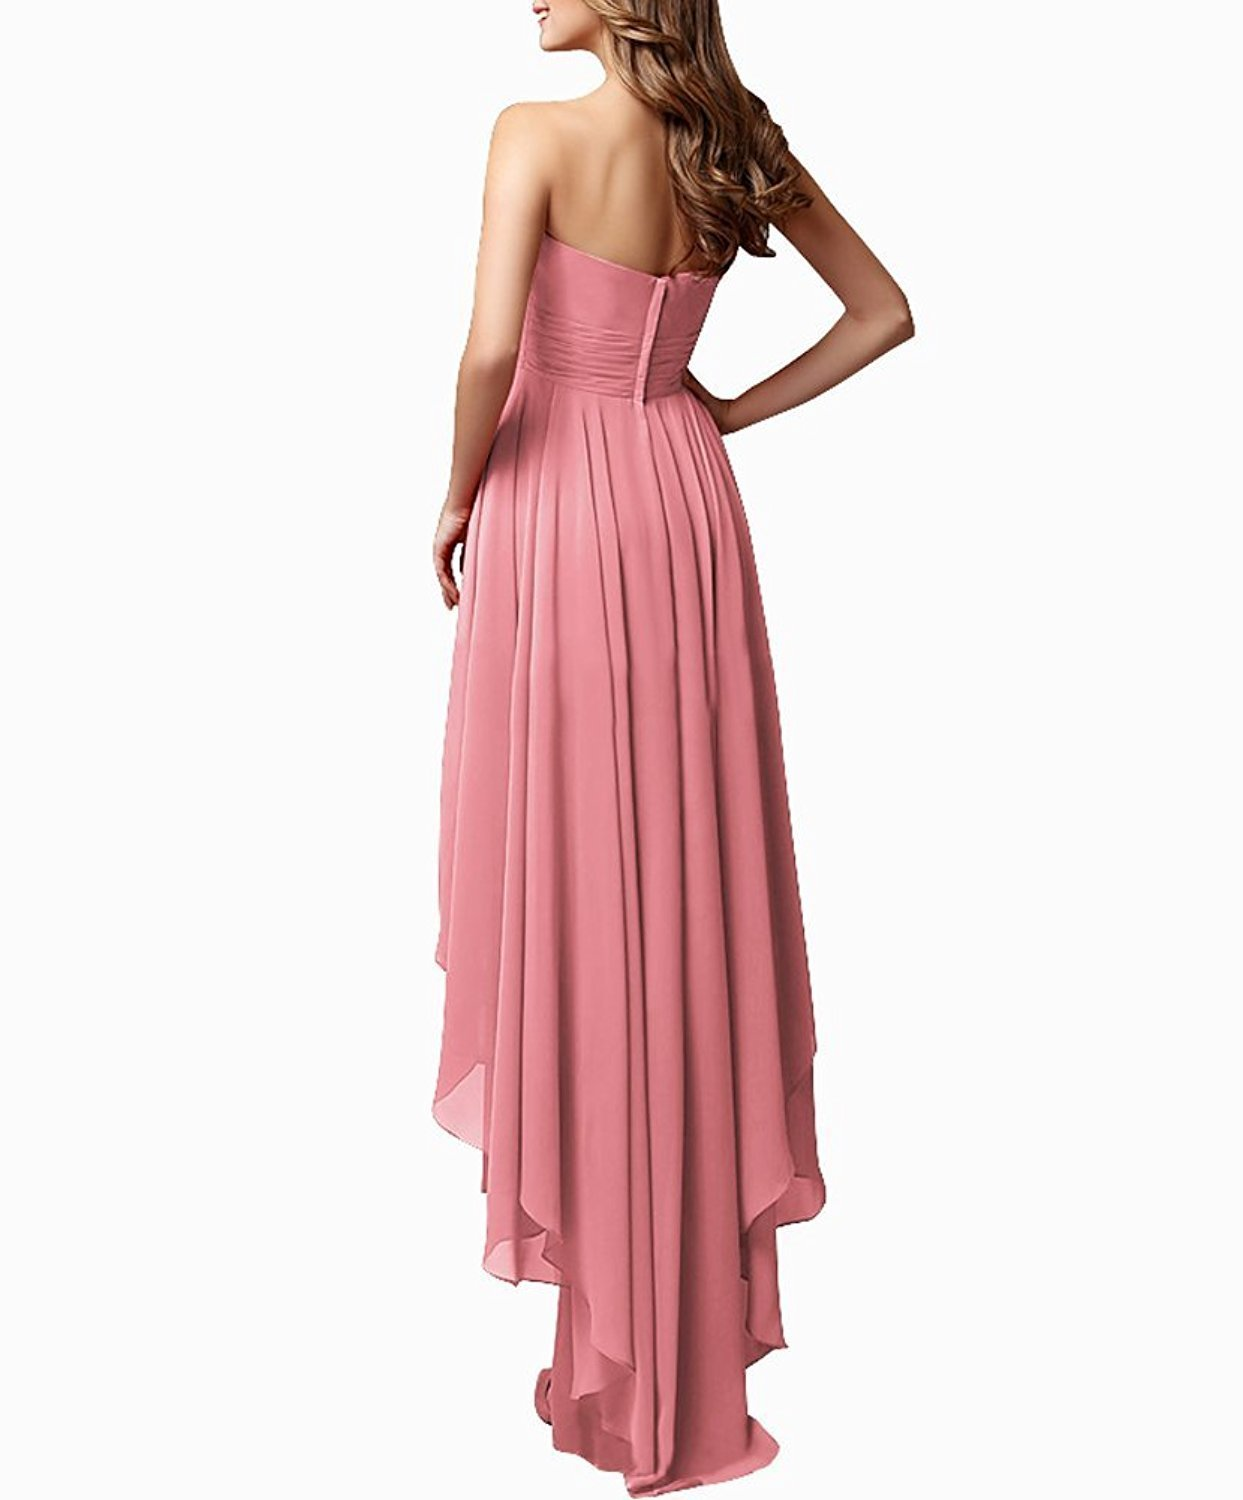 Women's Chiffon Sweetheart Hi-Lo Bridesmaid Dresses Evening Party Prom Gown 2018